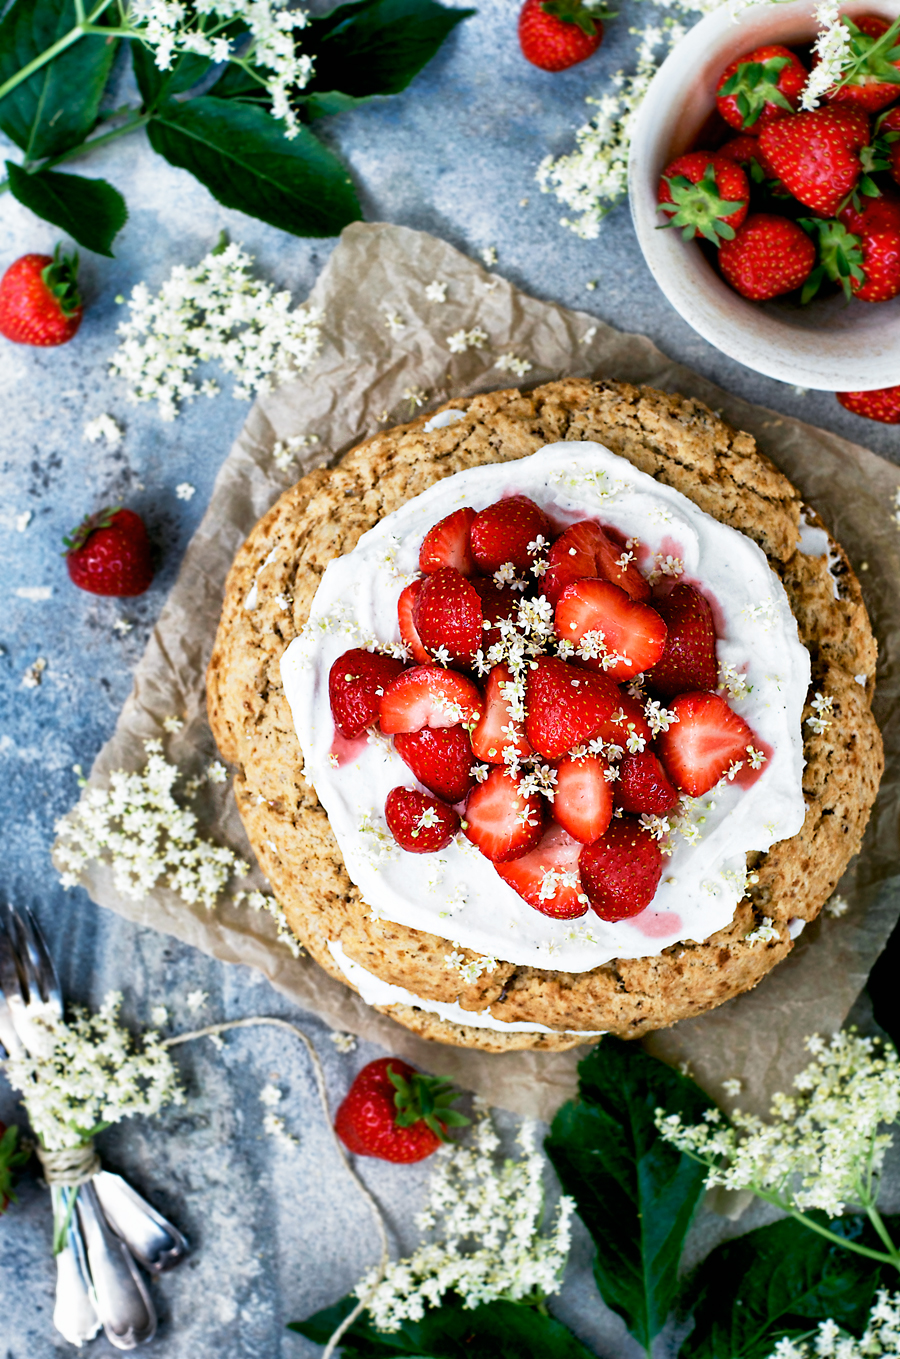 giant scone cake topped with coconut whipped cream, strawberries, and elderflower blossoms